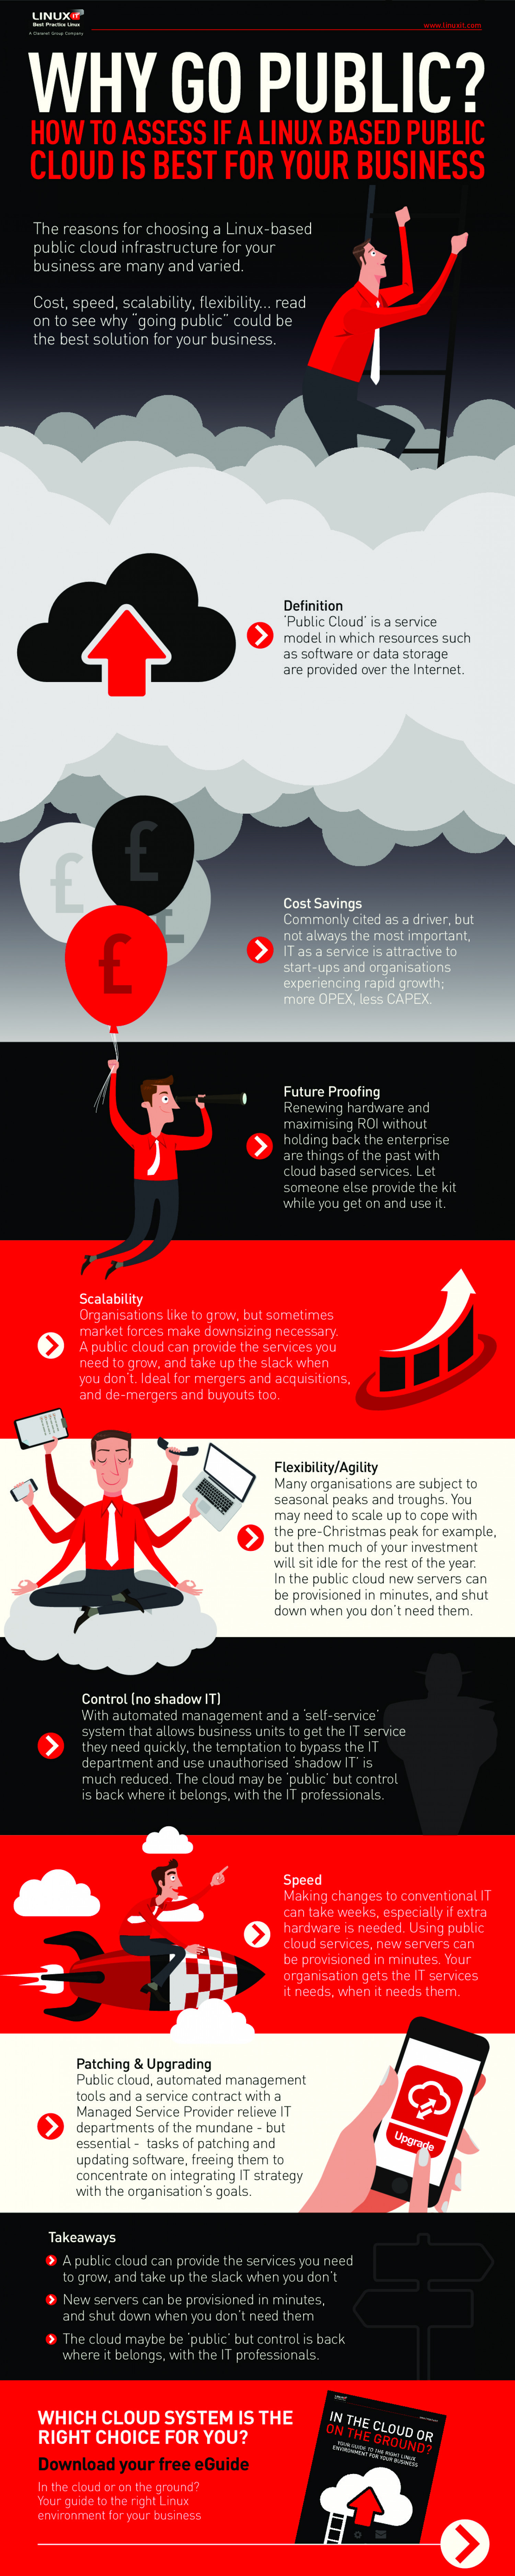 How to Assess If a Linux Based Public Cloud Is Best for Your Business Infographic